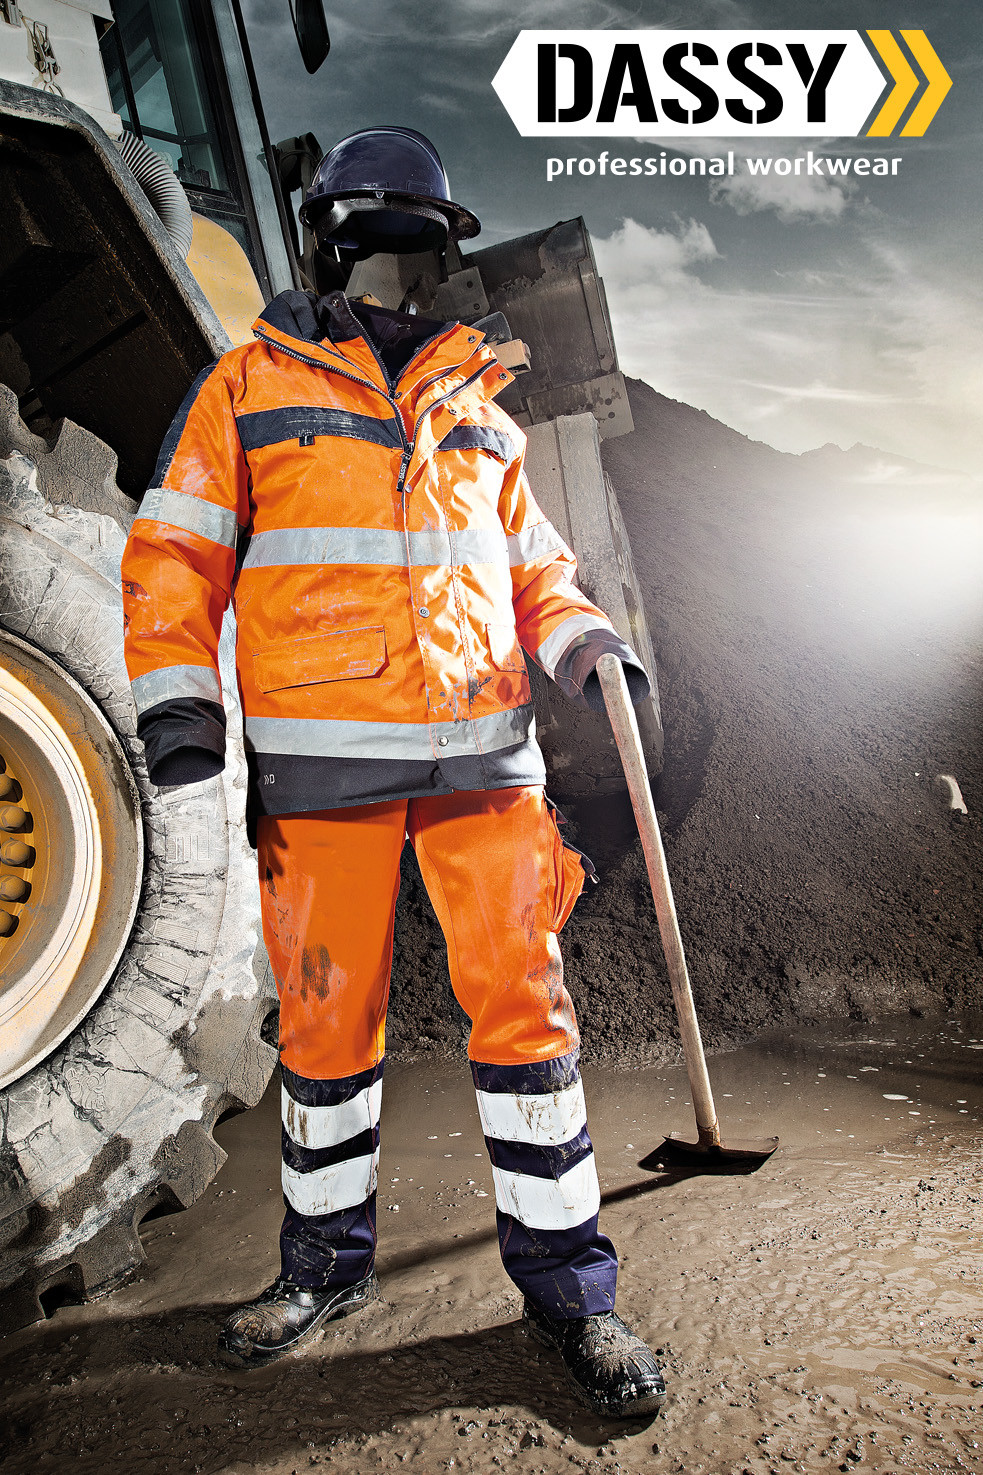 Dassy Professional Workwear High Visibility Workwear